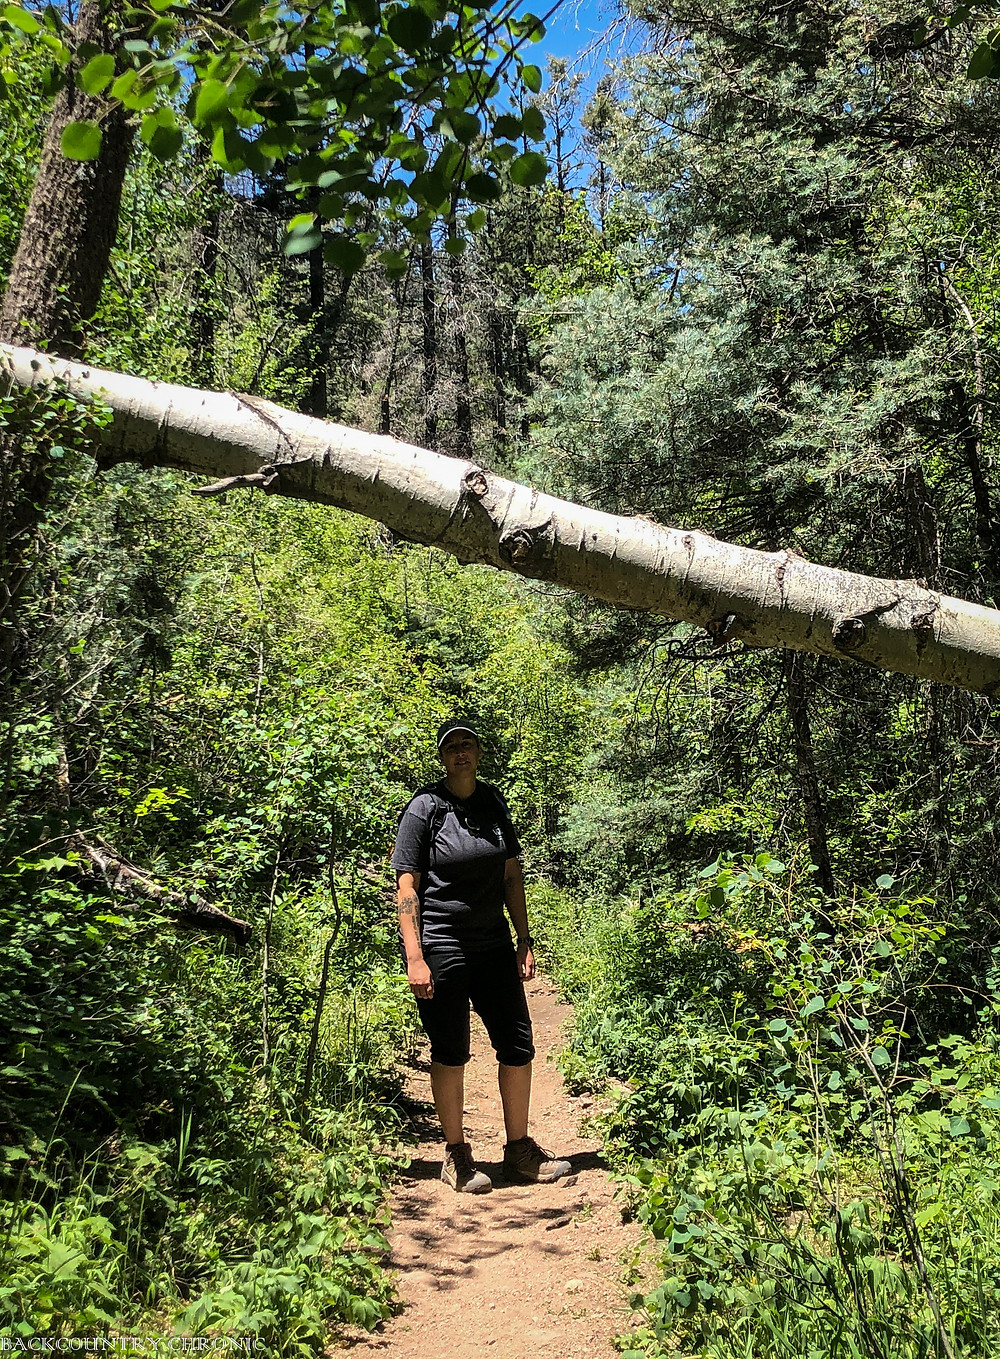 hiking improves overall health